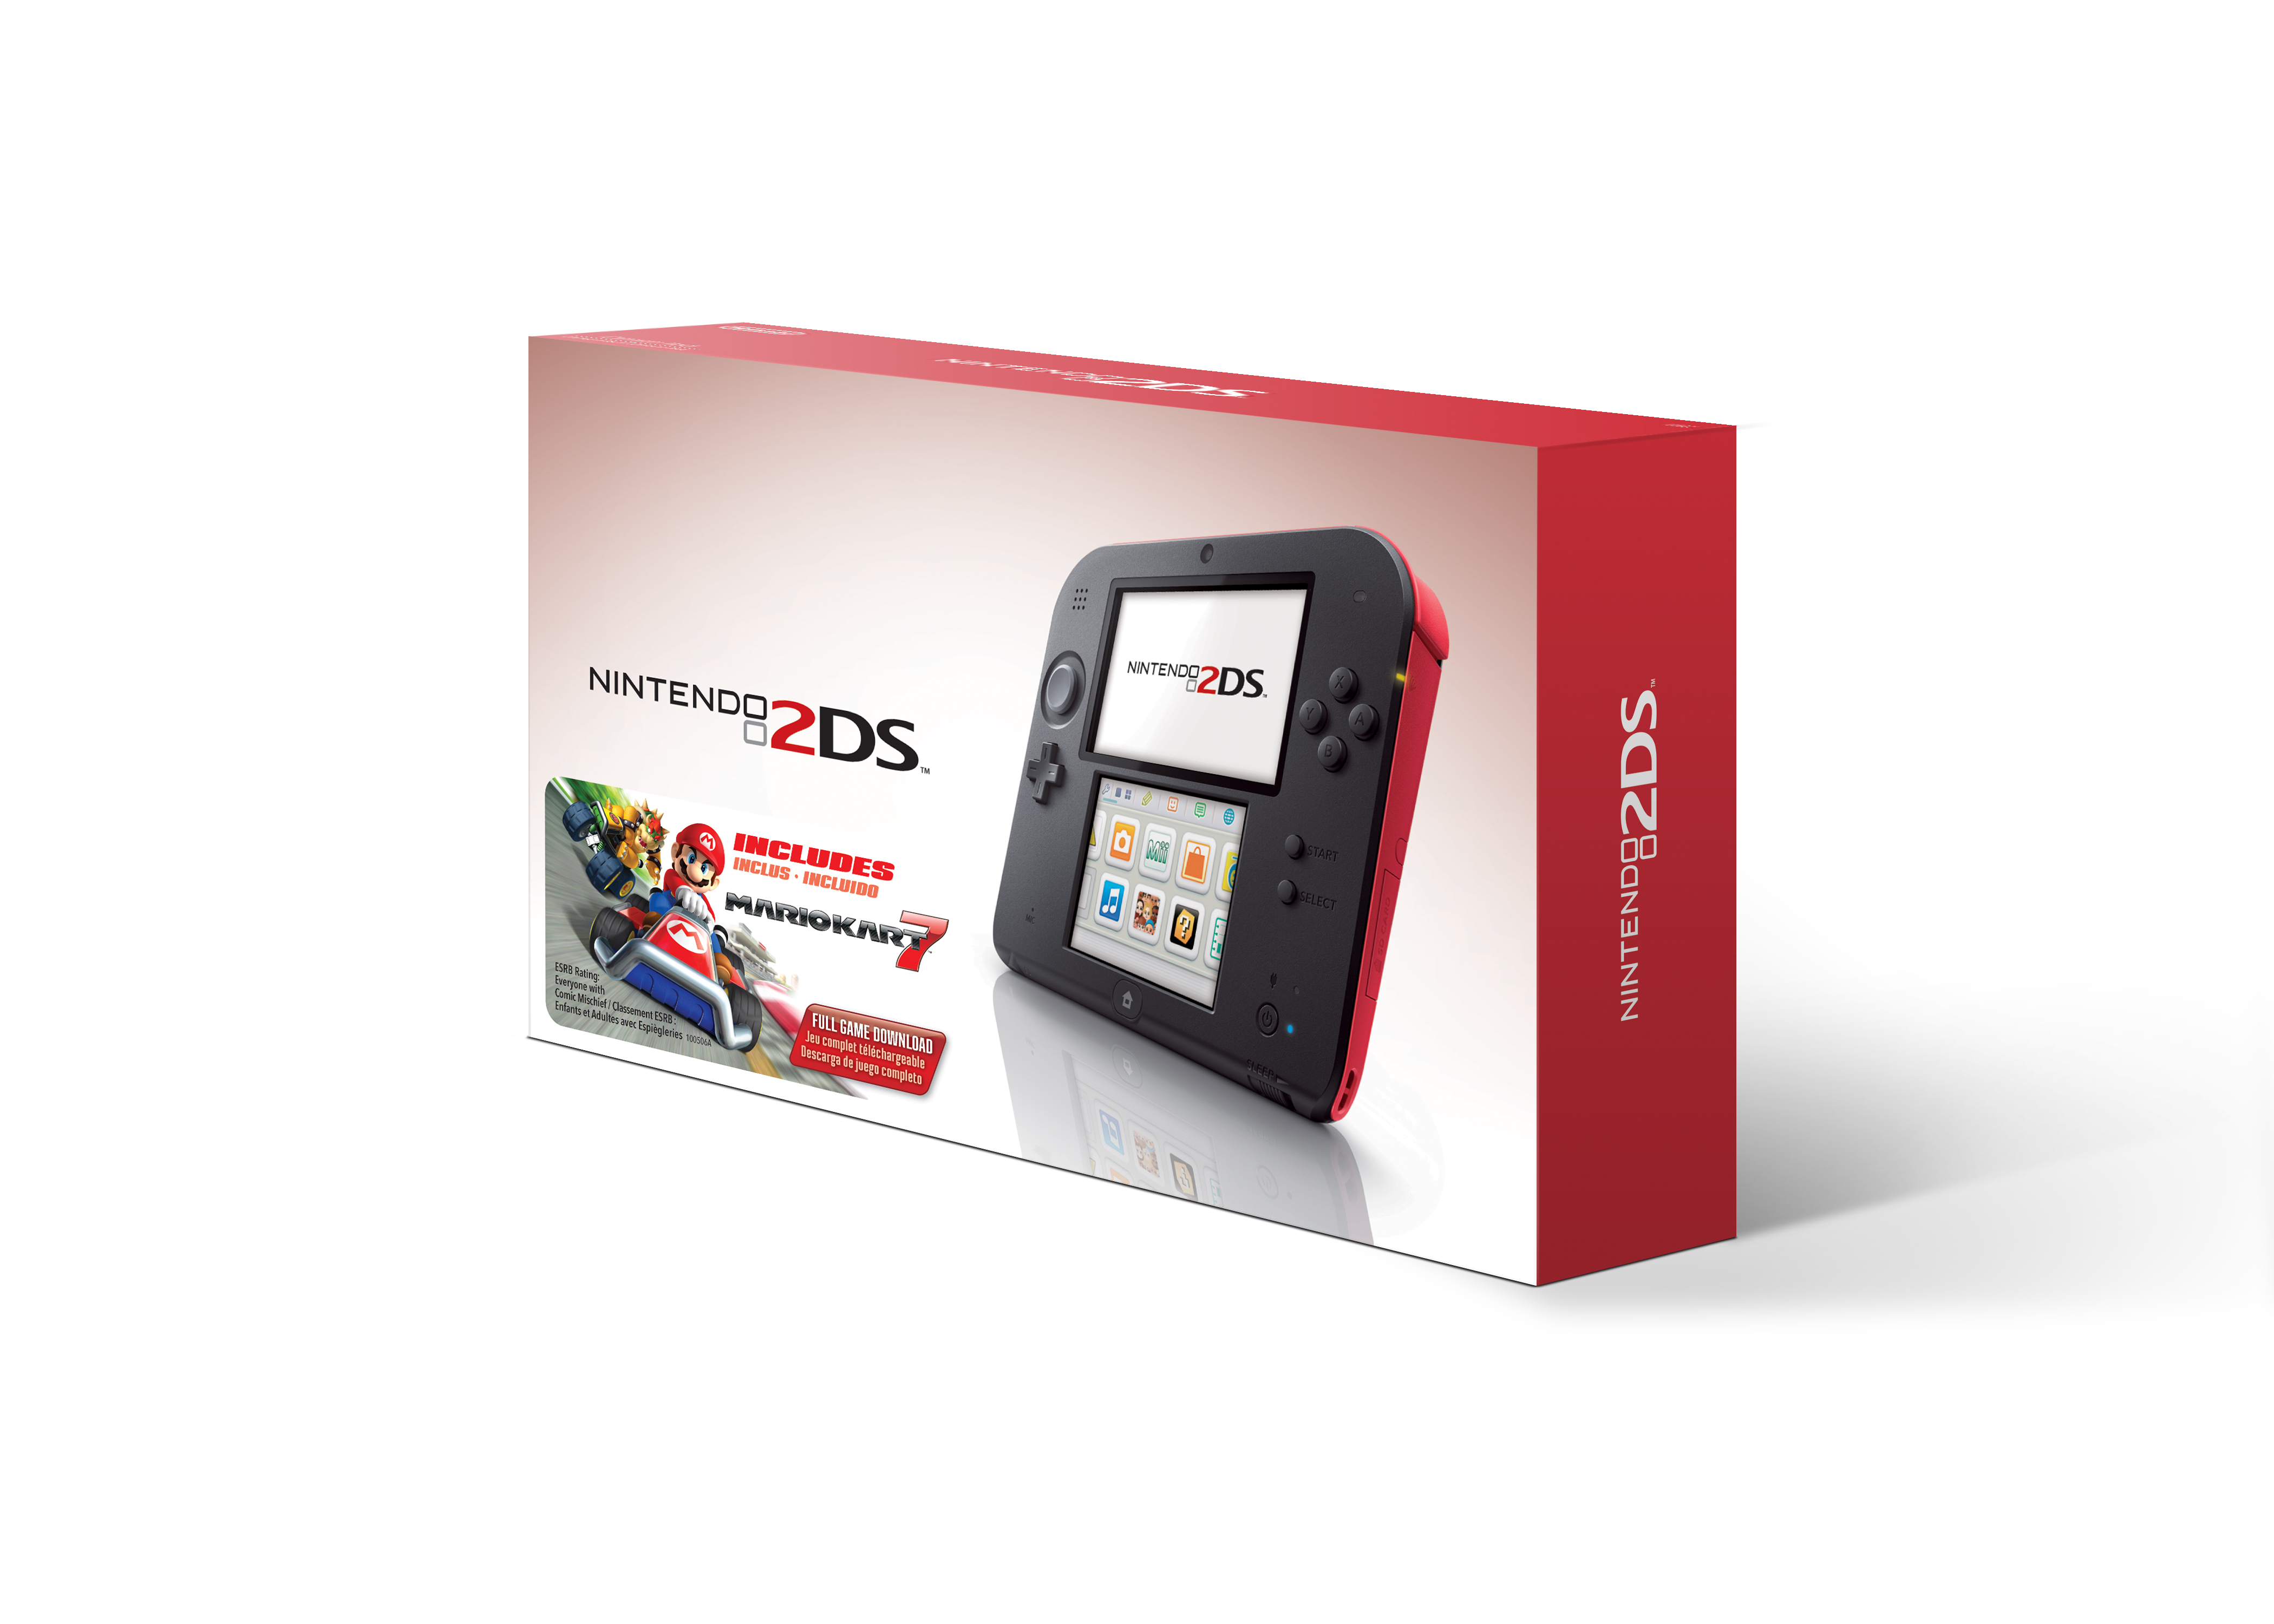 In early October, three new Nintendo 2DS bundles will hit stores. The new bundles feature the Electric Blue, Crimson Red or Sea Green Nintendo 2DS system along with a code to download Mario Kart 7 from the Nintendo eShop. The bundles will be available at a suggested retail price of $129.99 each. (Photo: Business Wire)